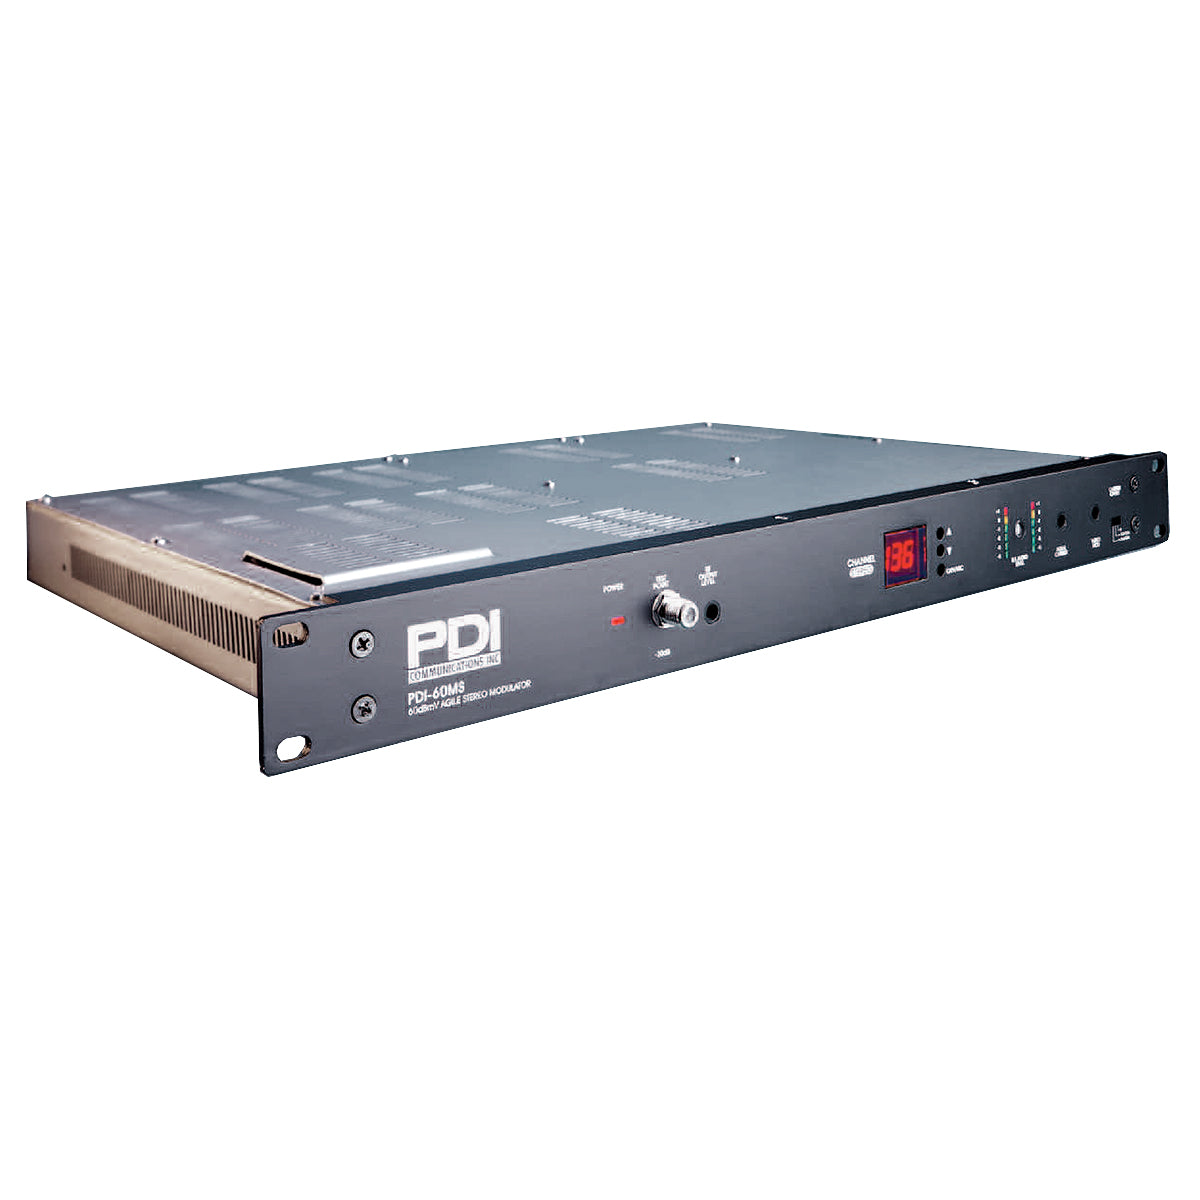 PDI-60M 860MHz SAW Filtered Triple IF Loop Through Frequency Agile Modulator